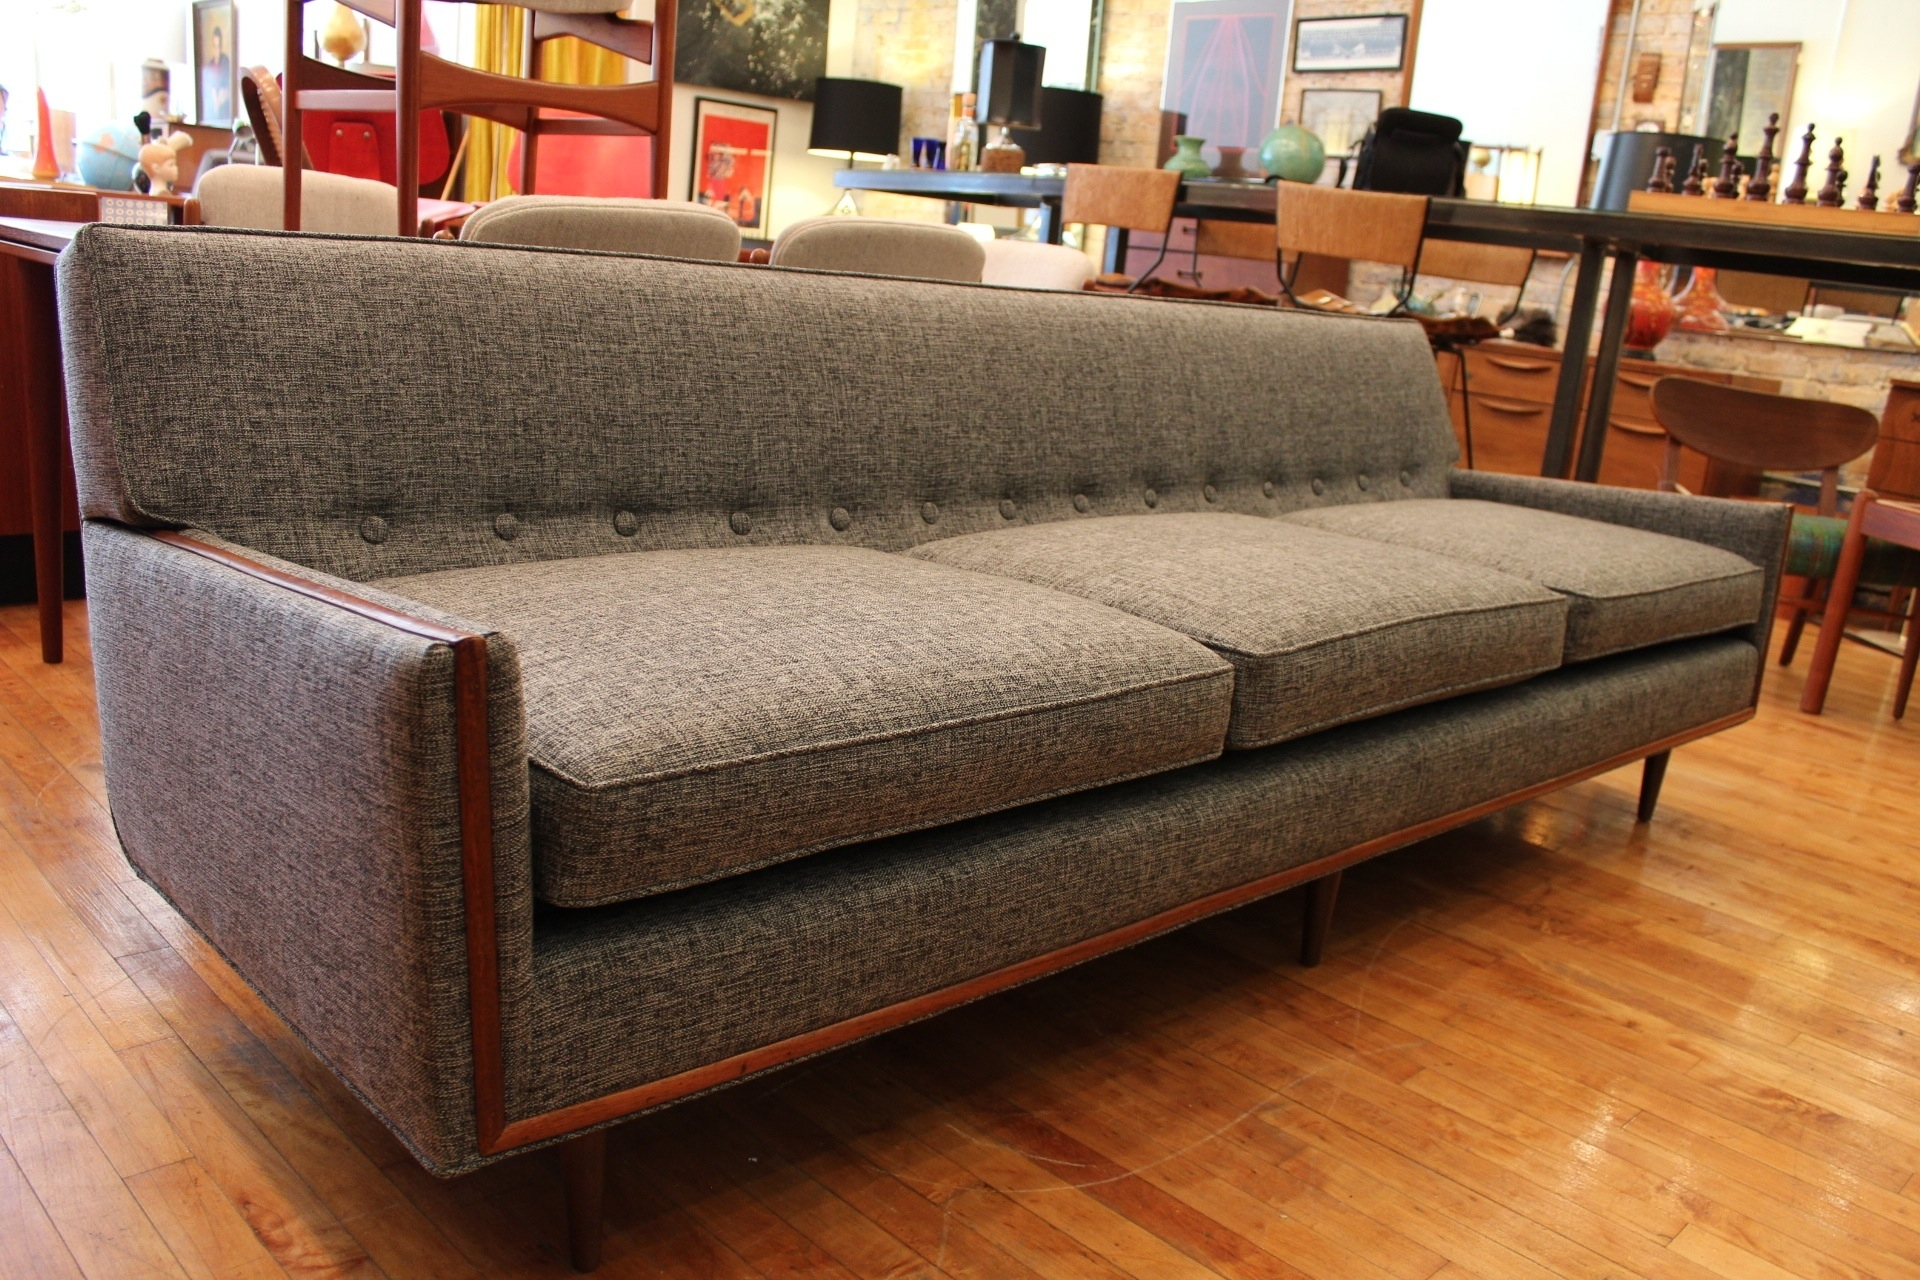 Sofa : Appealing Vintage Mid Century Modern Sofa Furniture Sectional With Vintage Sectional Sofas (View 6 of 10)